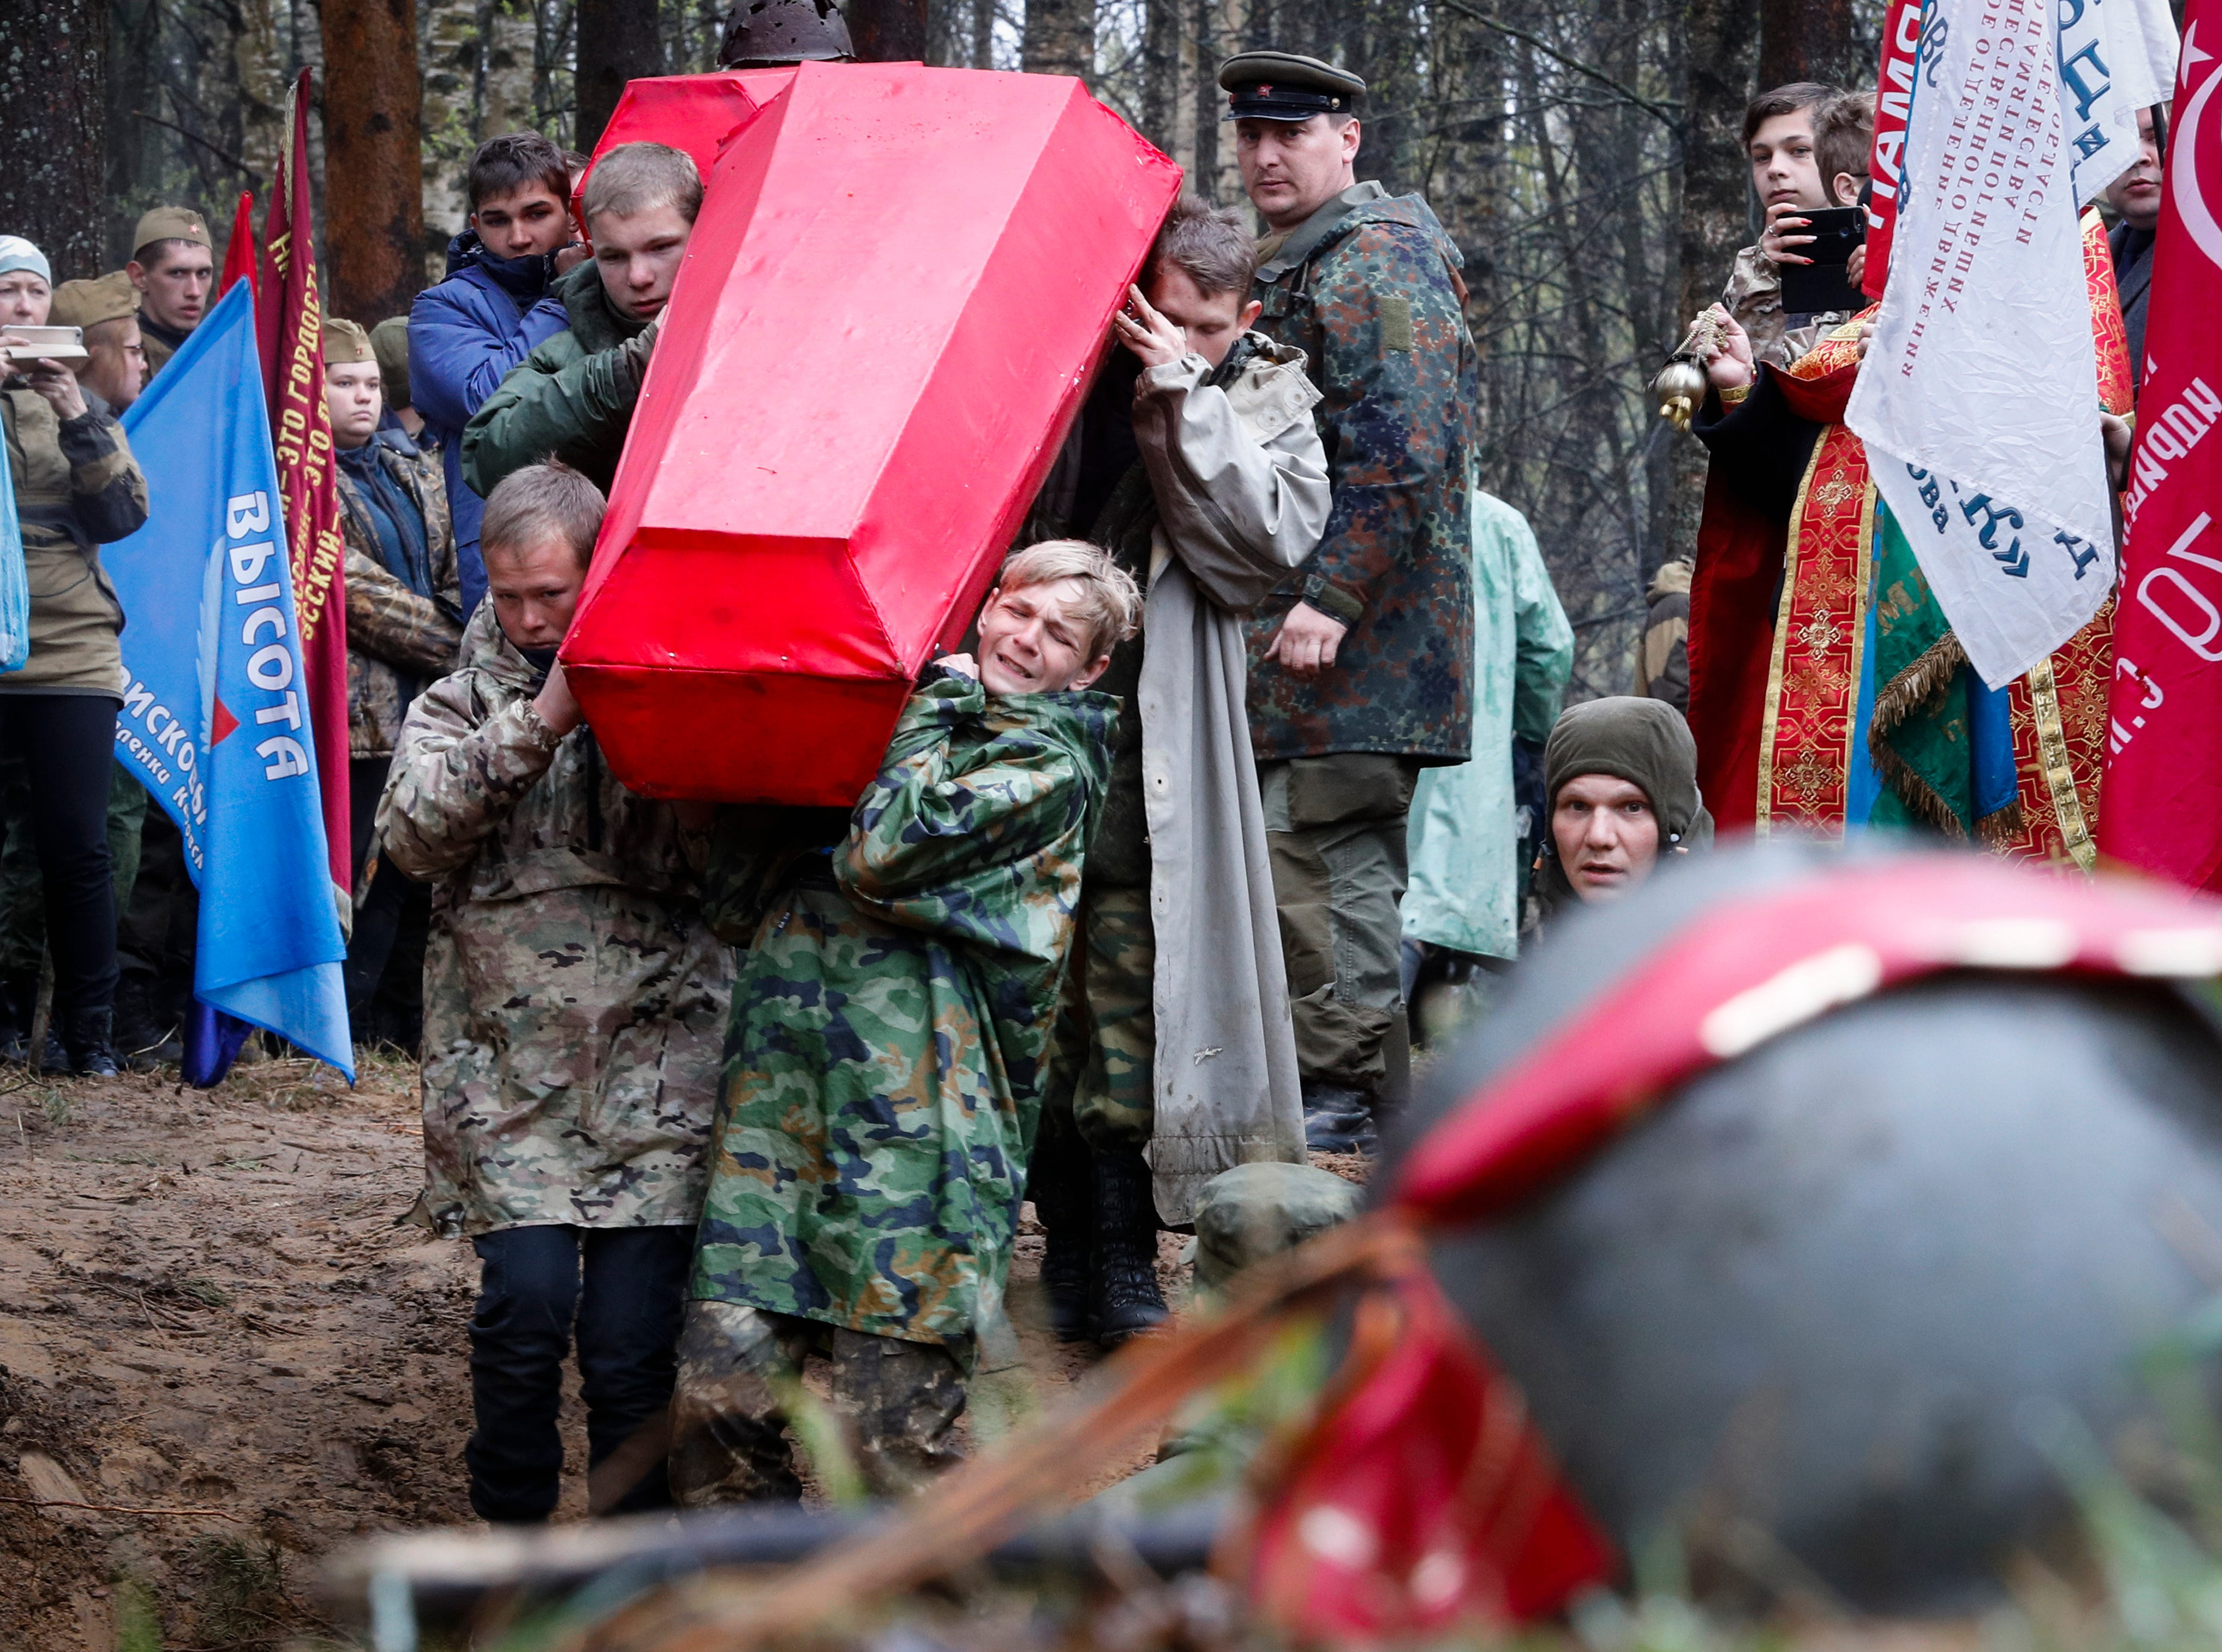 Members of volunteer search teams carry coffins with the remains of Soviet soldiers killed during World War II, during a reburial ceremony at the Sinyavino Heights memorial near the village of Sinyavino, 50 km (31 miles) east of St. Petersburg, Russia, Tuesday, May 7, 2019. Hundreds of people came to a World War II battleground outside St. Petersburg to bury the remains of 714 Soviet soldiers recovered by volunteer search teams. Forty one crimson coffins containing skulls and bones were solemnly buried at the Sinyavino Heights memorial as Russian war songs played and an honor guard fired a salute.